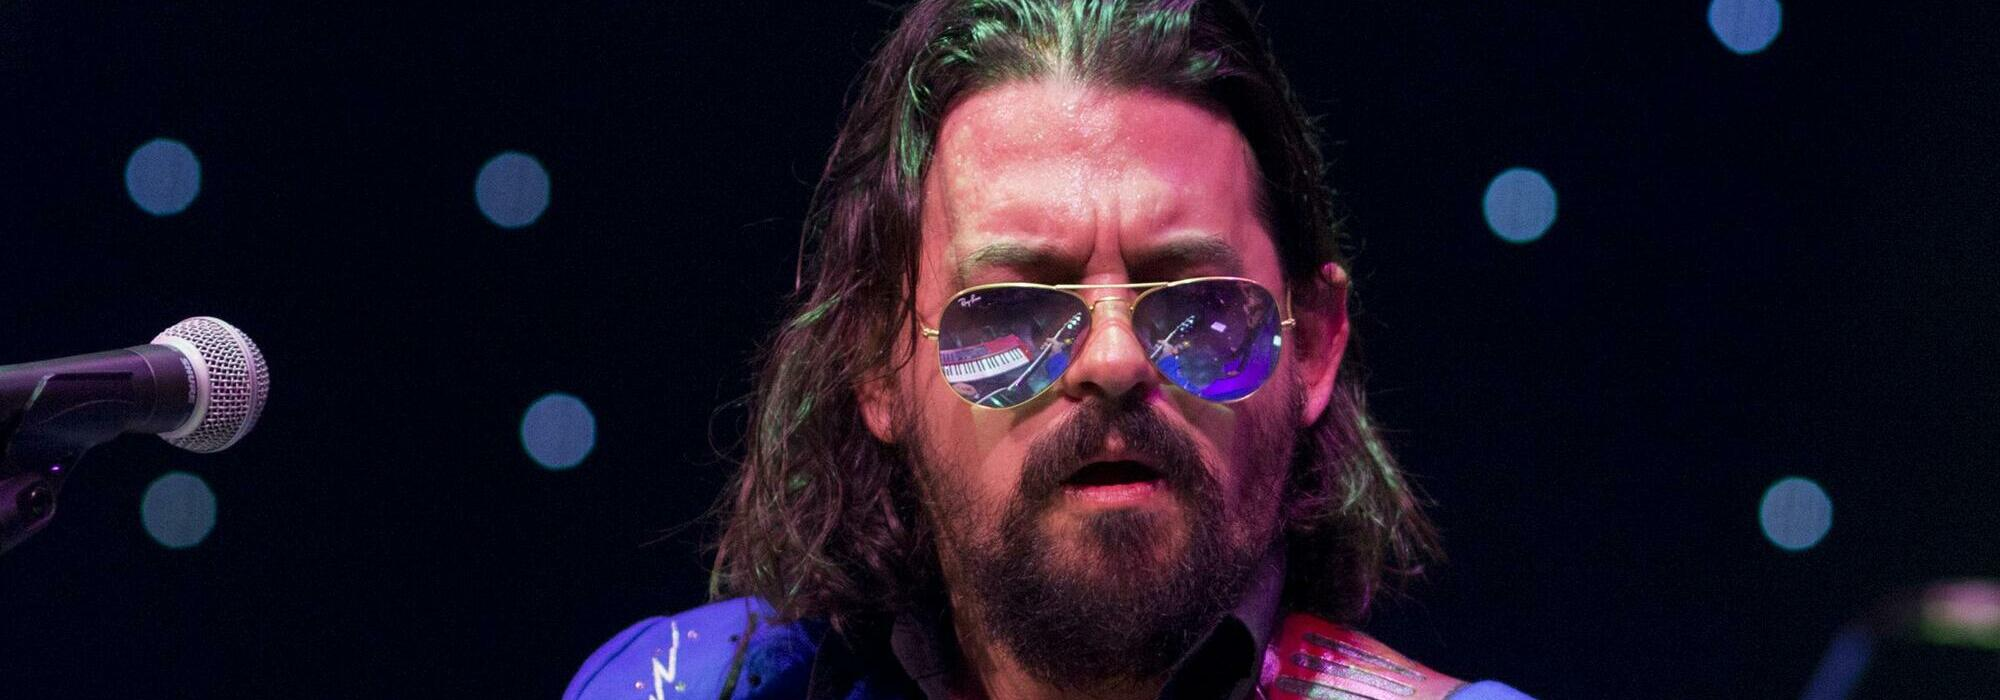 A Shooter Jennings live event